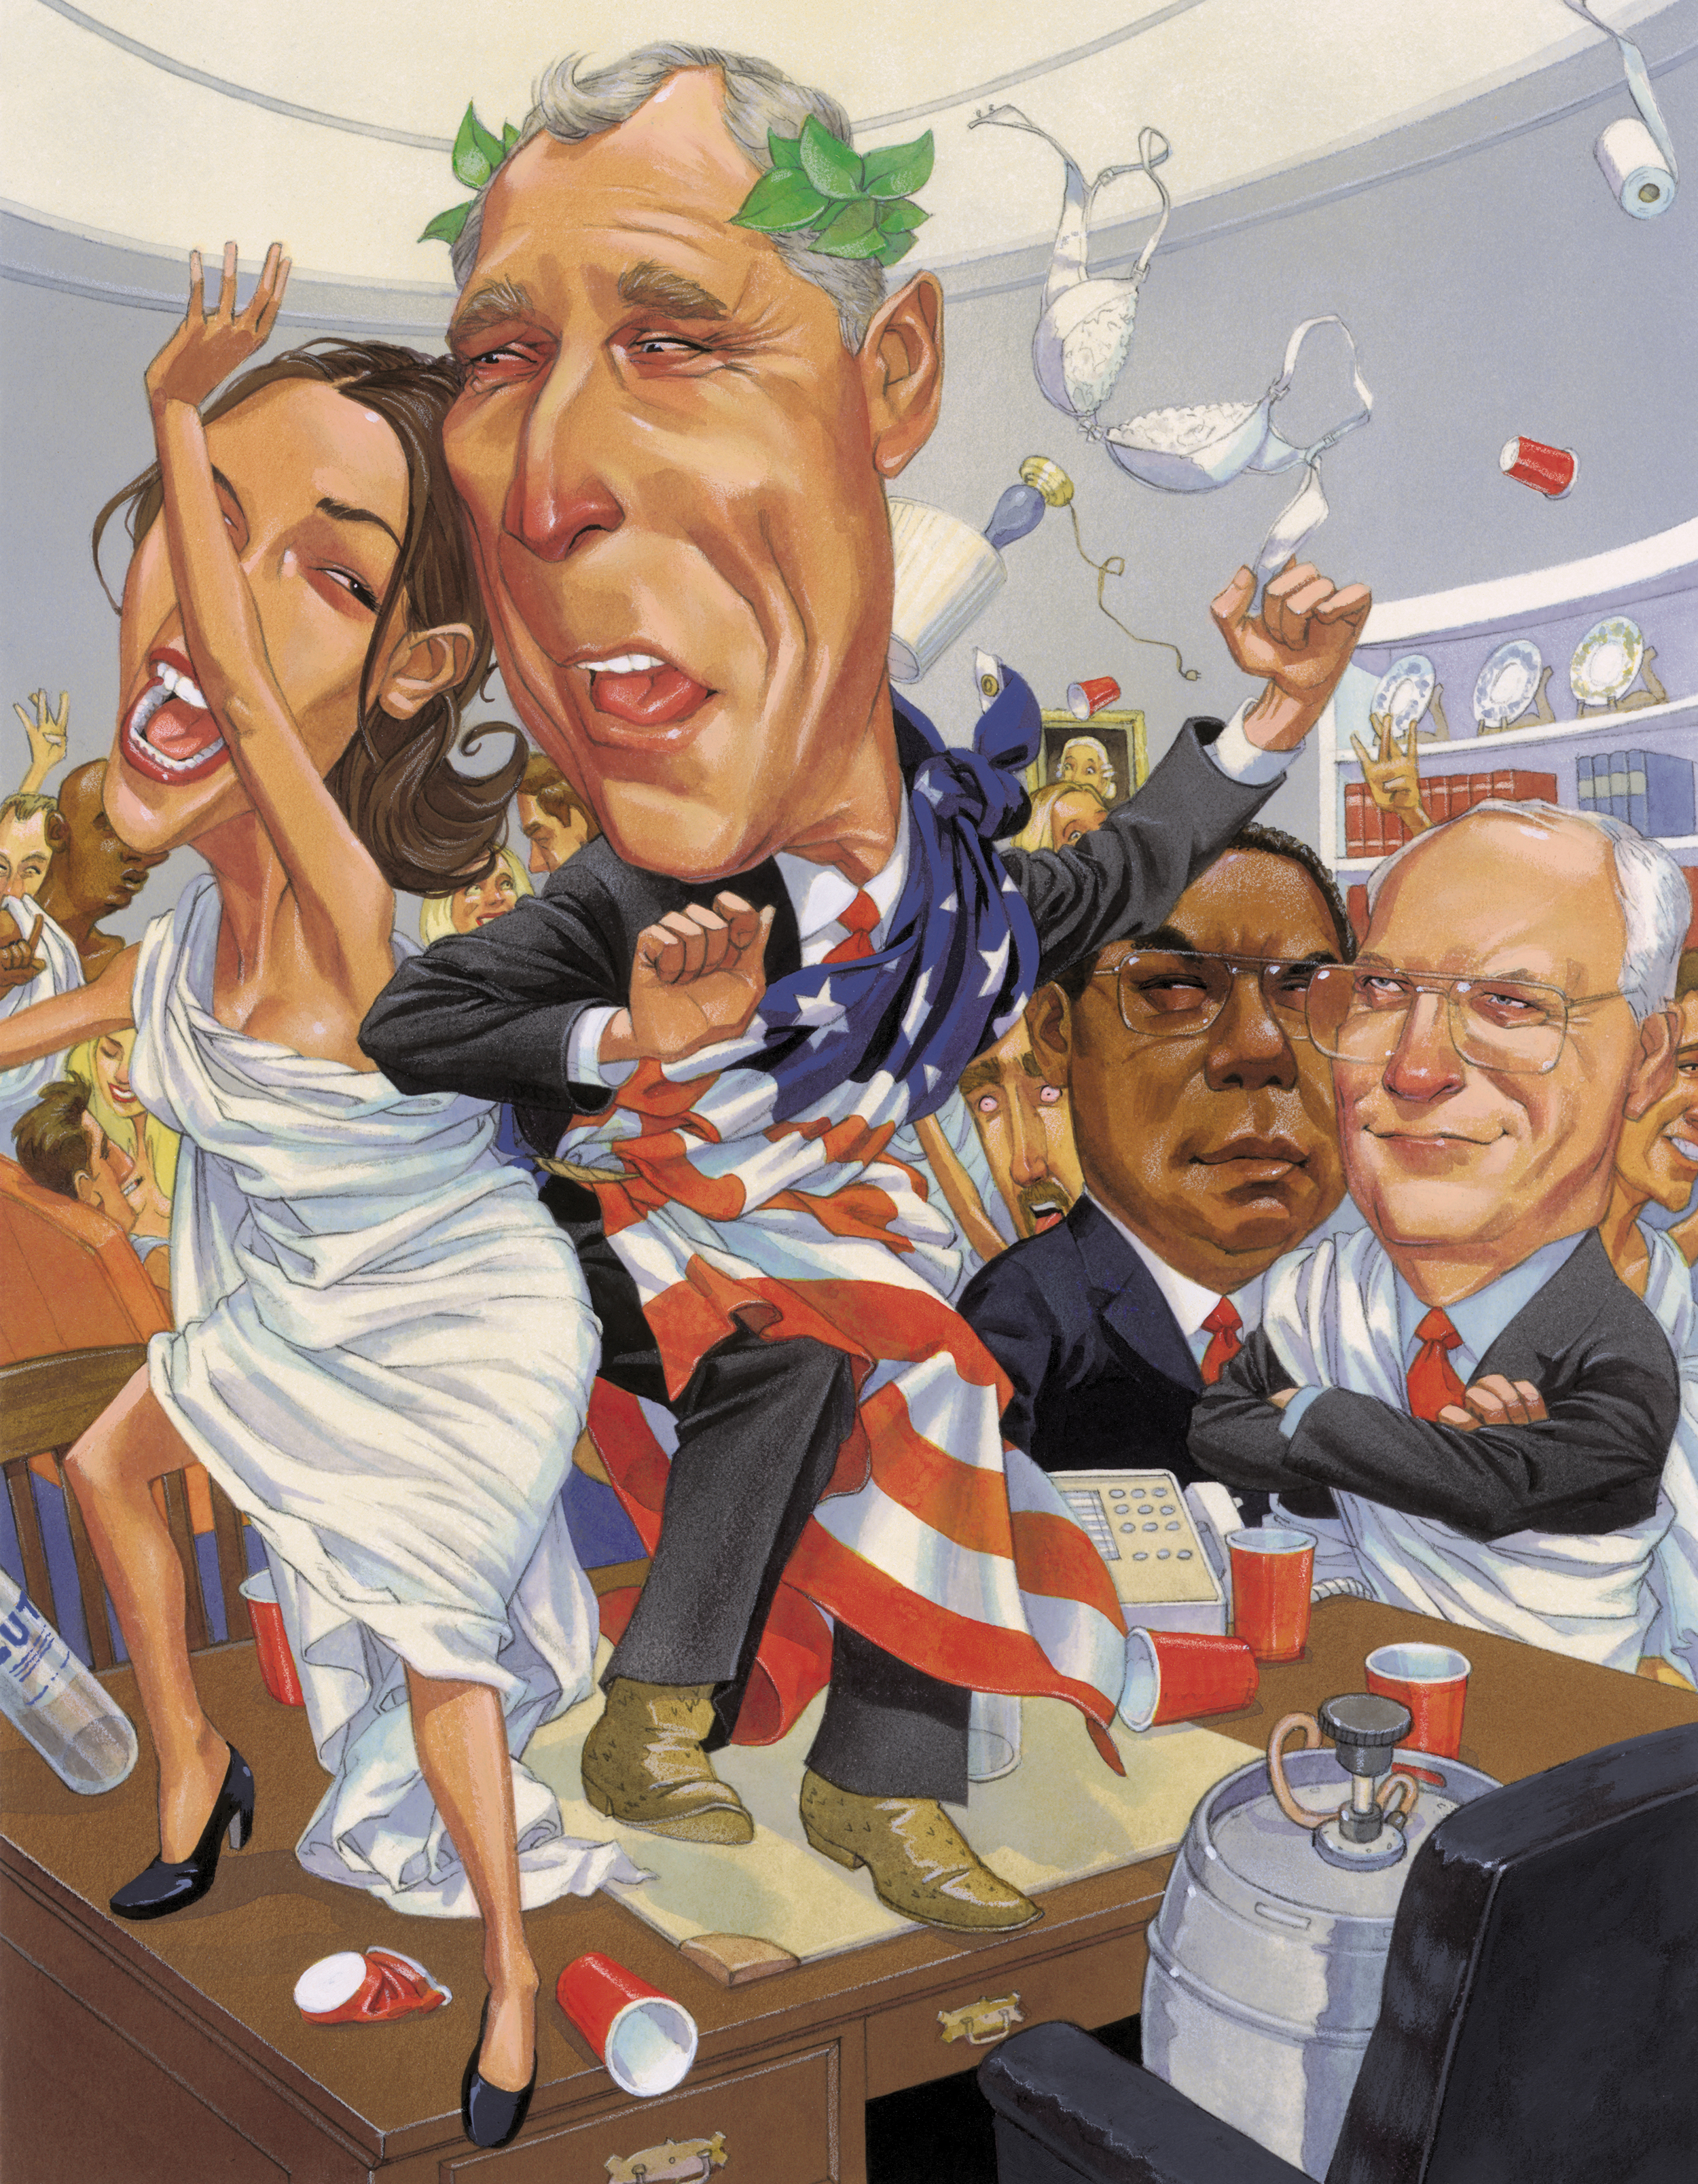 Illustration Portfolio-Oval Office Party.jpg